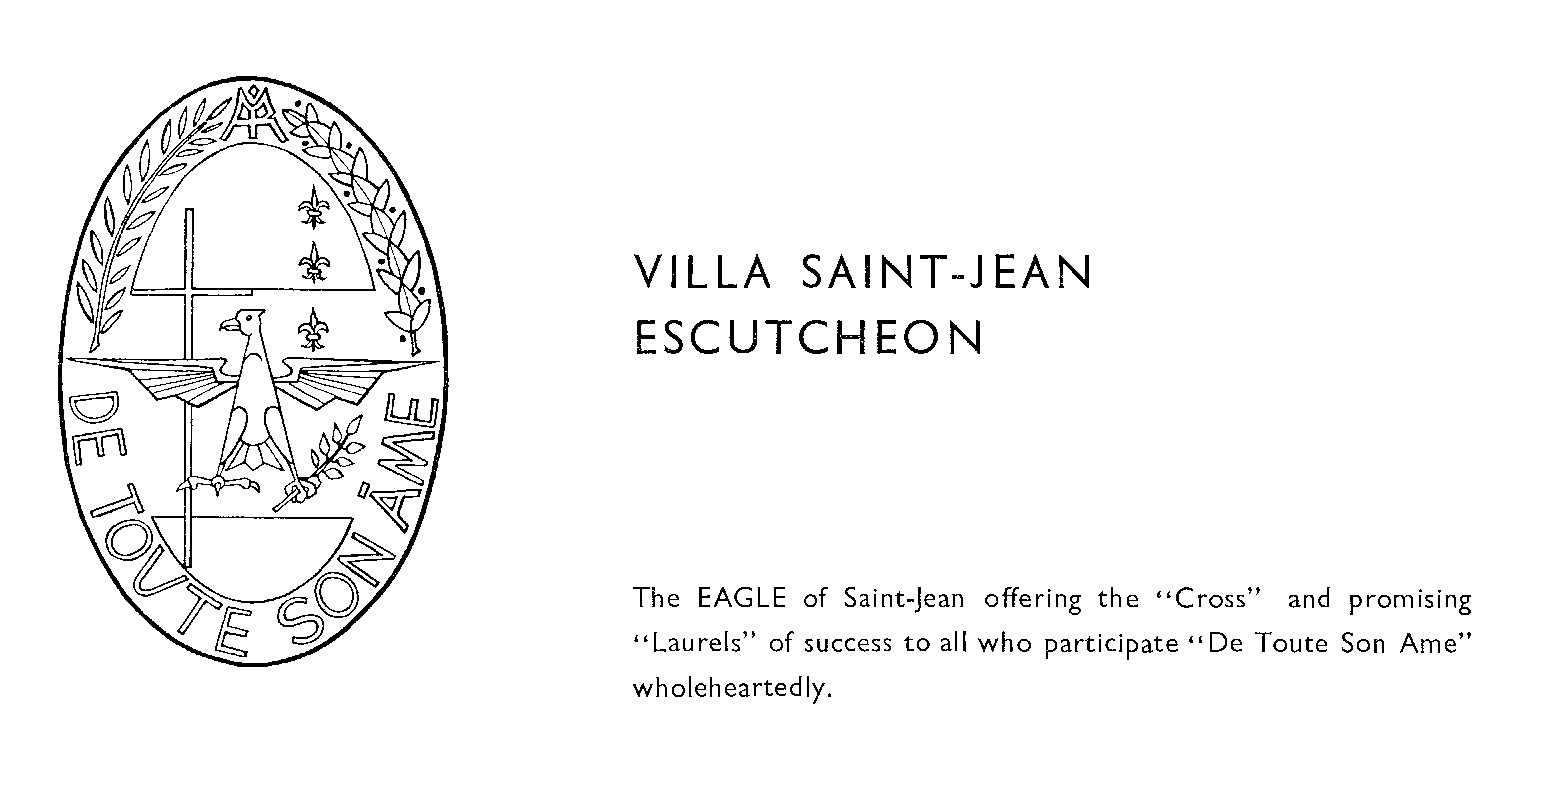 PHOTOS of Villa Saint Jean International School  Emblem De Toute Som Ame